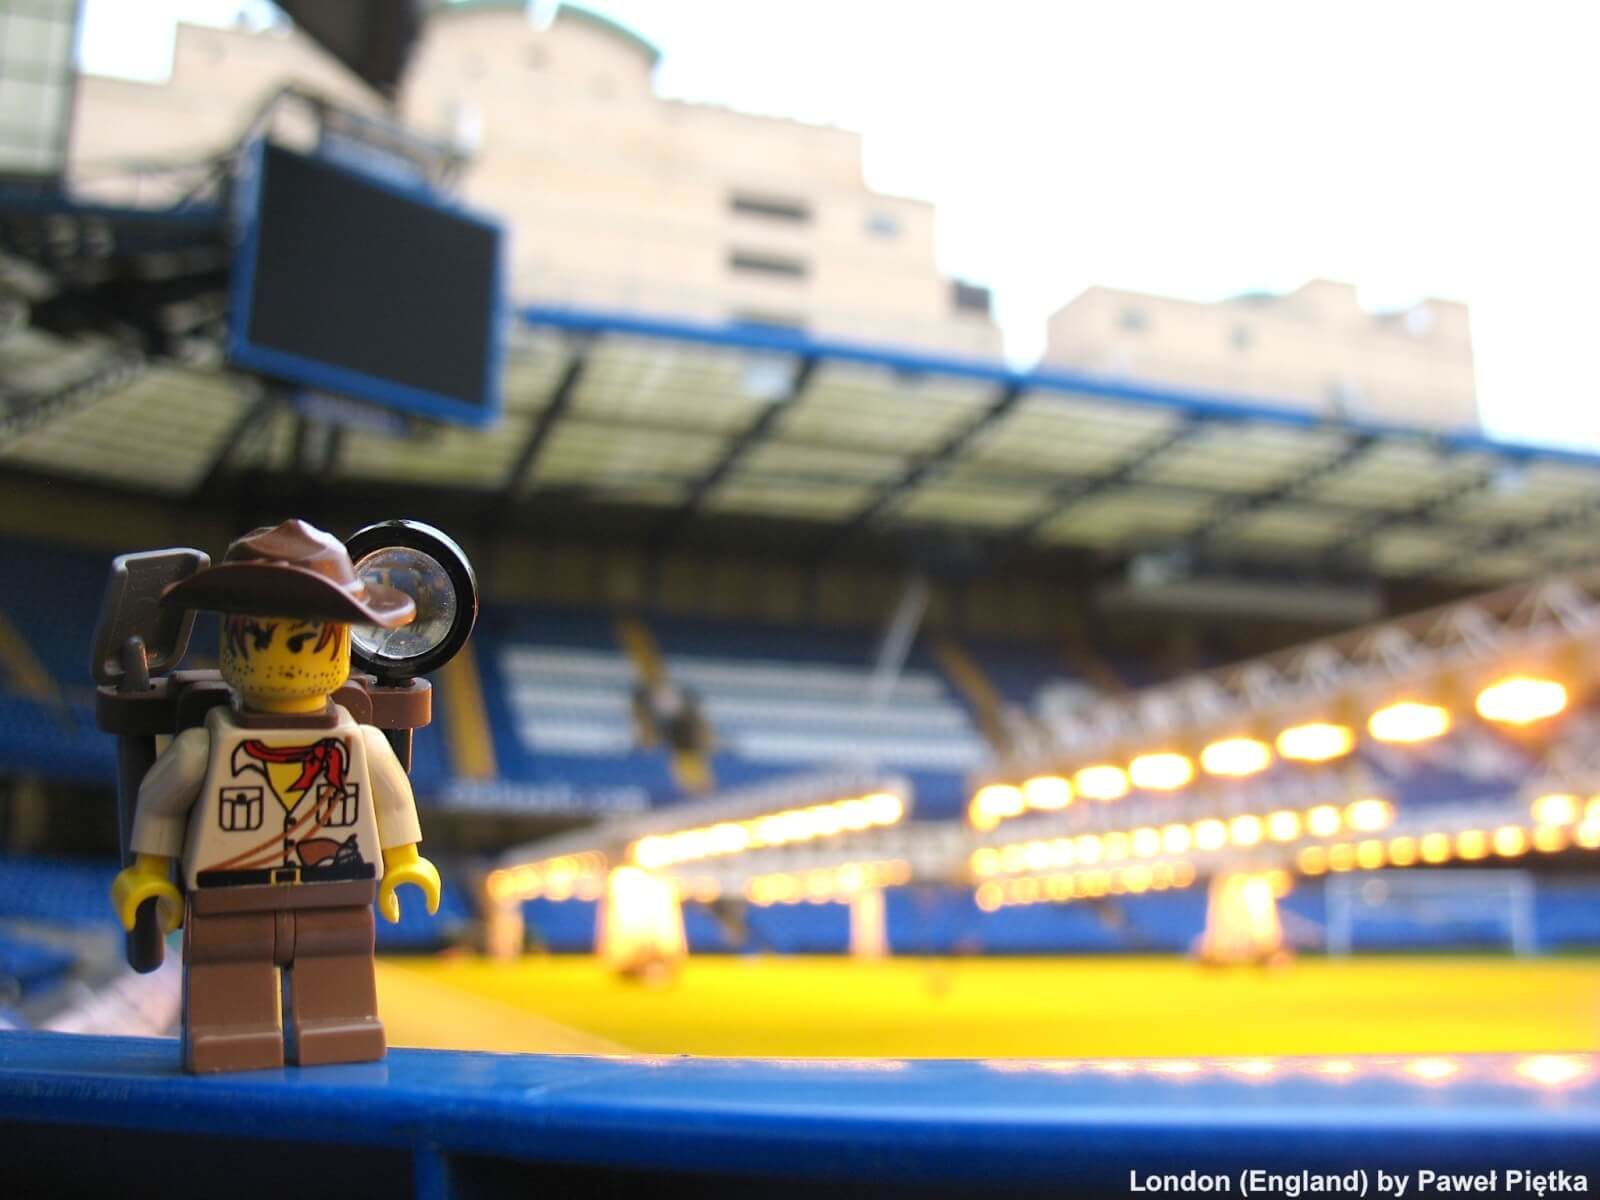 London (England) - Chelsea Stamford Bridge 2